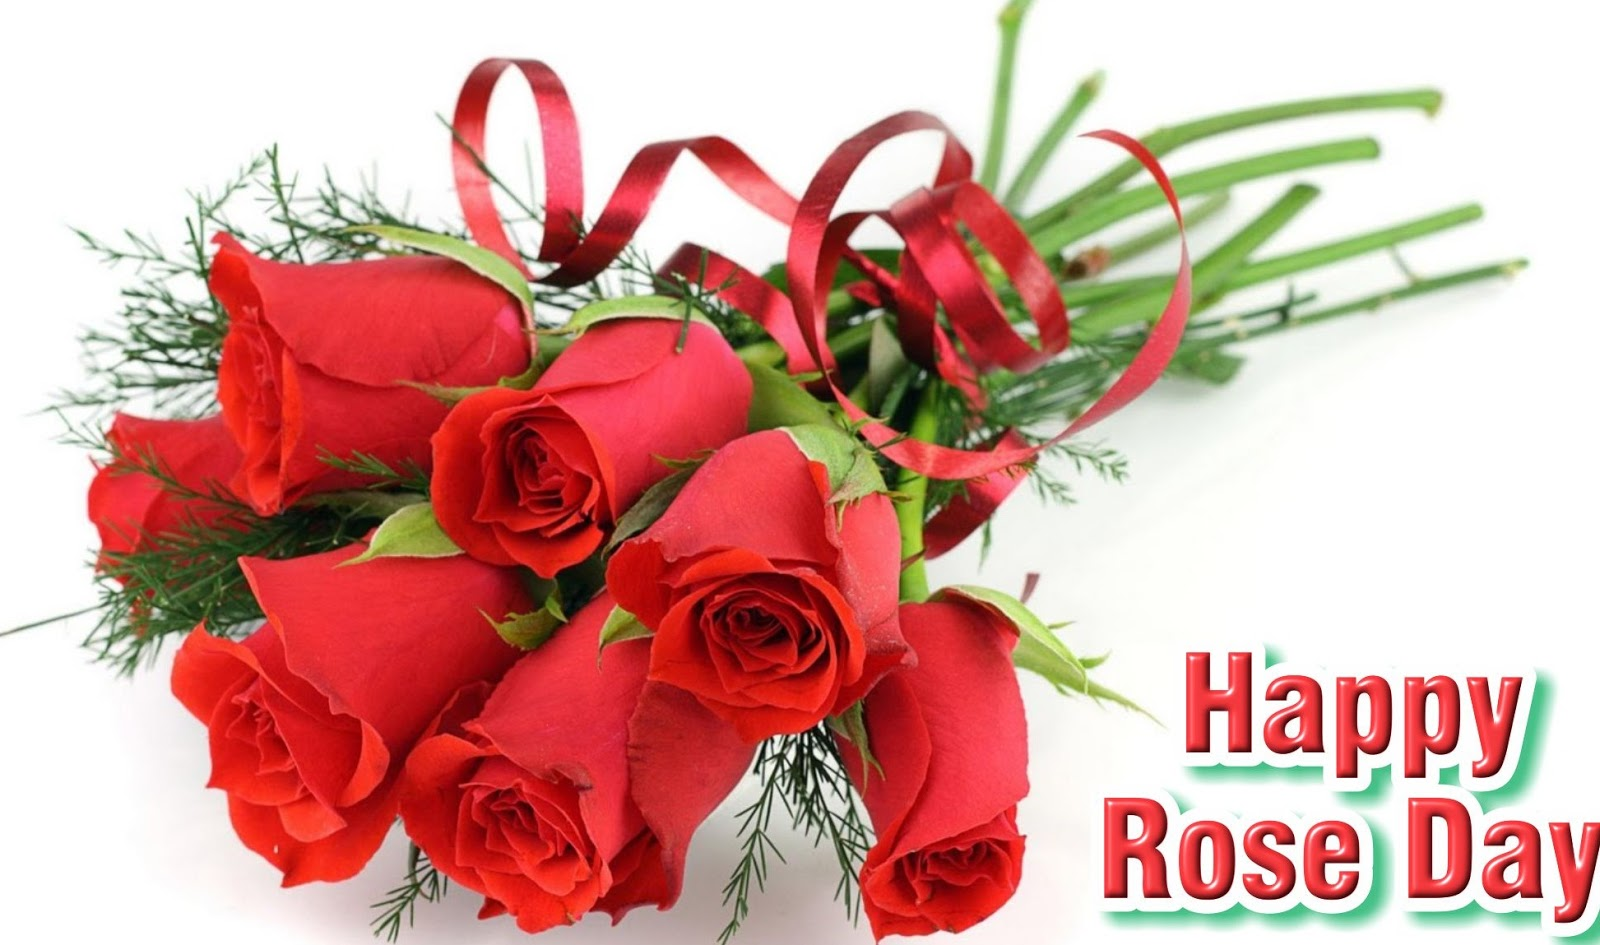 Happy Rose Day Images Beautiful Flowers Rose Day Images 2021